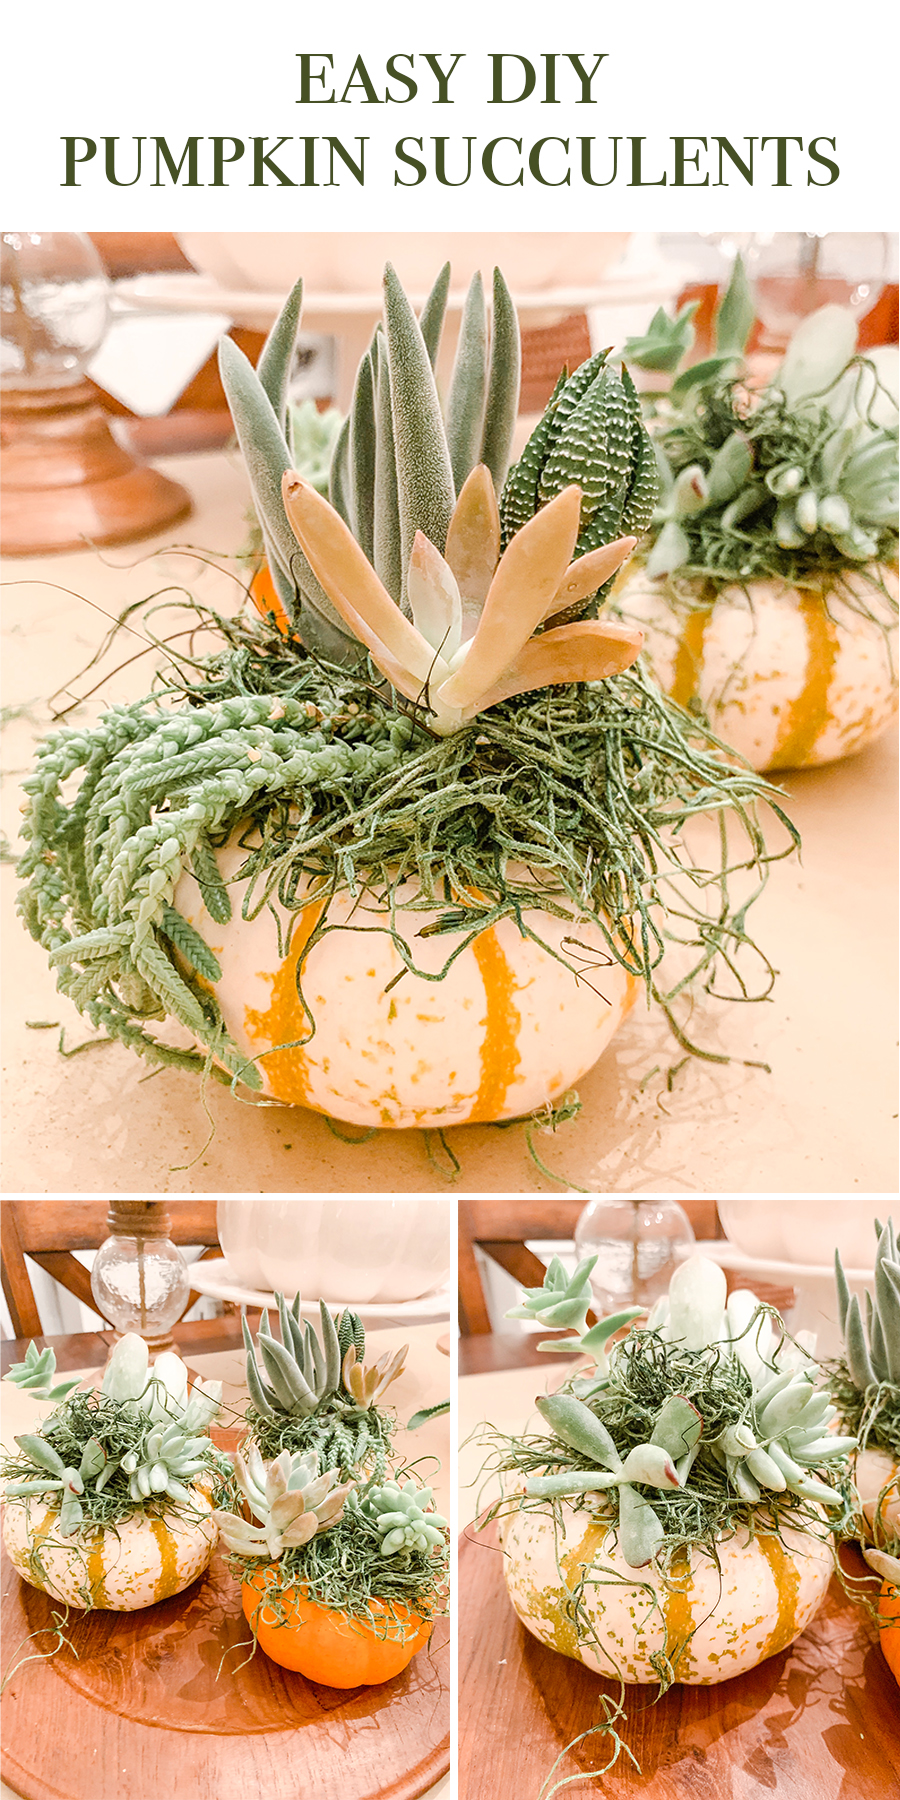 Easy DIY Pumpkin Succulents